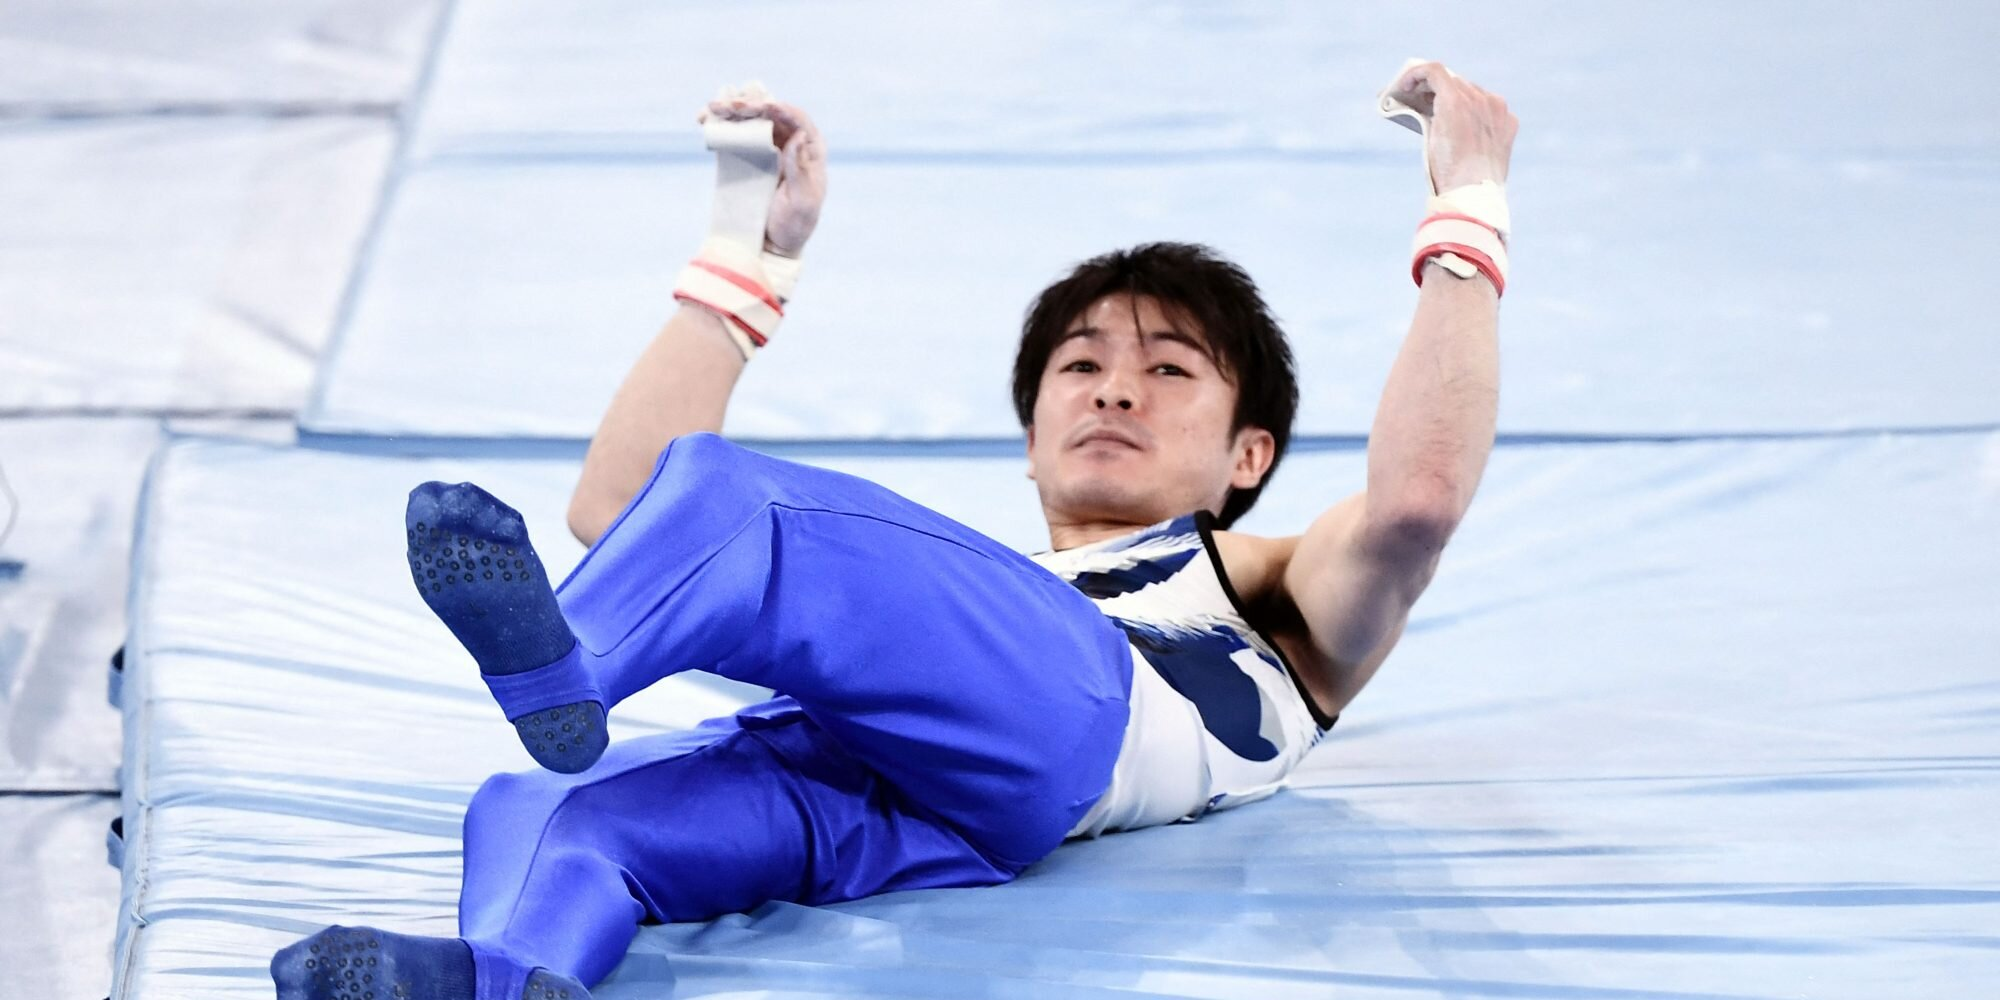 Reigning Gold Medal Gymnast from Japan Slips Off Horizontal Bar in Stunning Fall, Out of Olympics